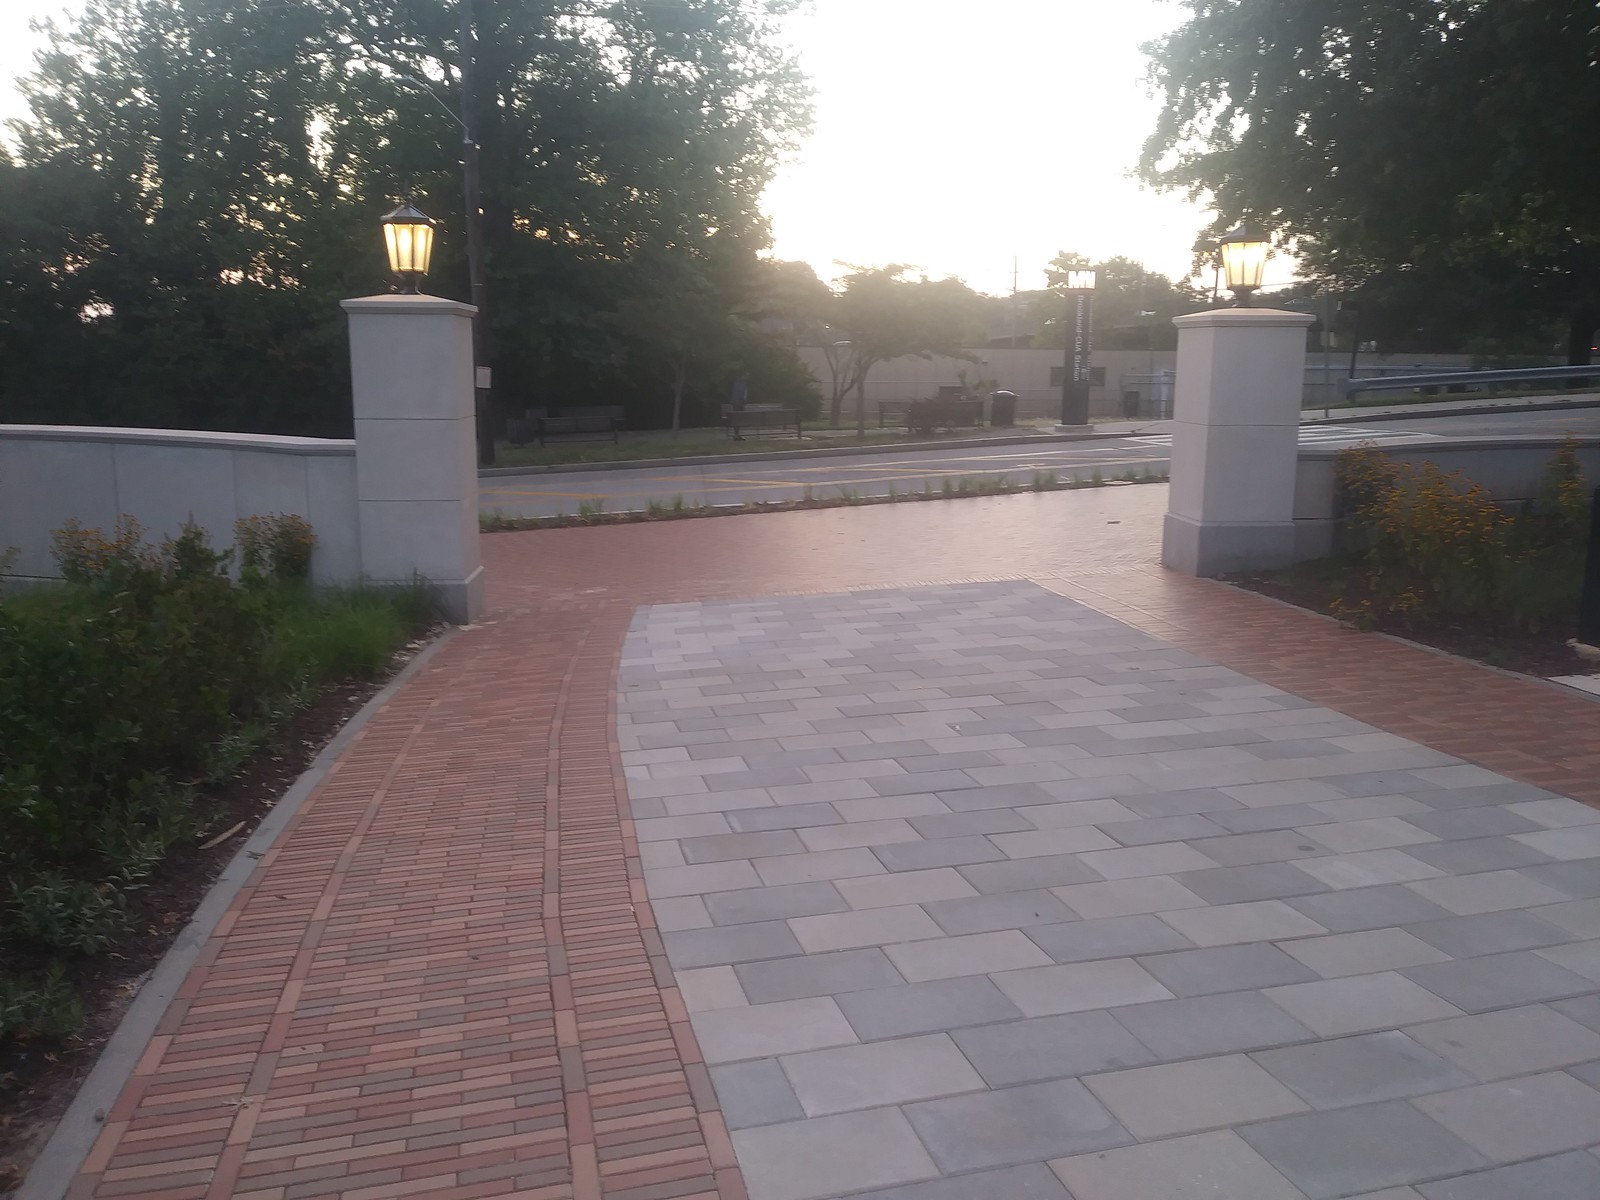 New Catholic University pedestrian walkway jogs rather than continues across McCormack Road to the Brookland Metrorail Station